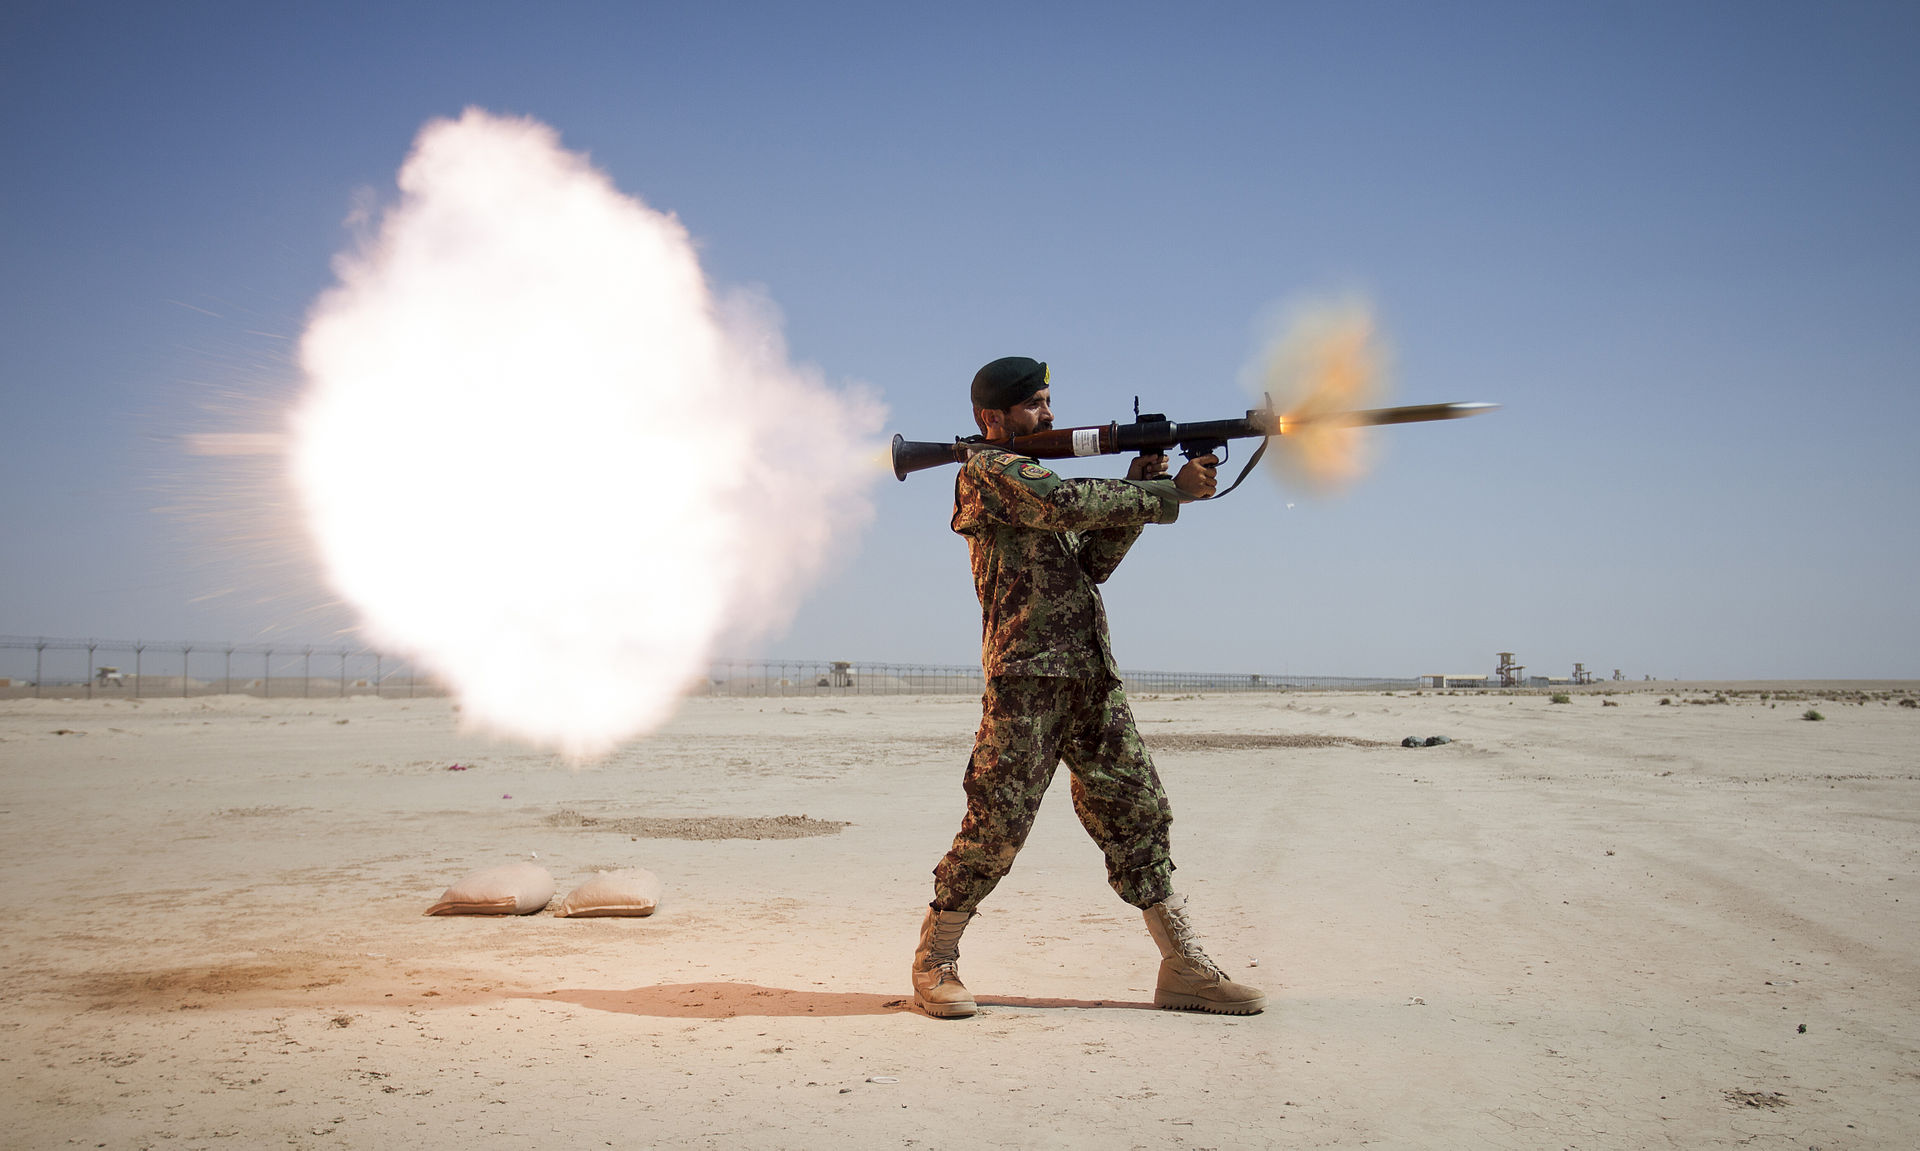 Afghan Soldier firing RPG